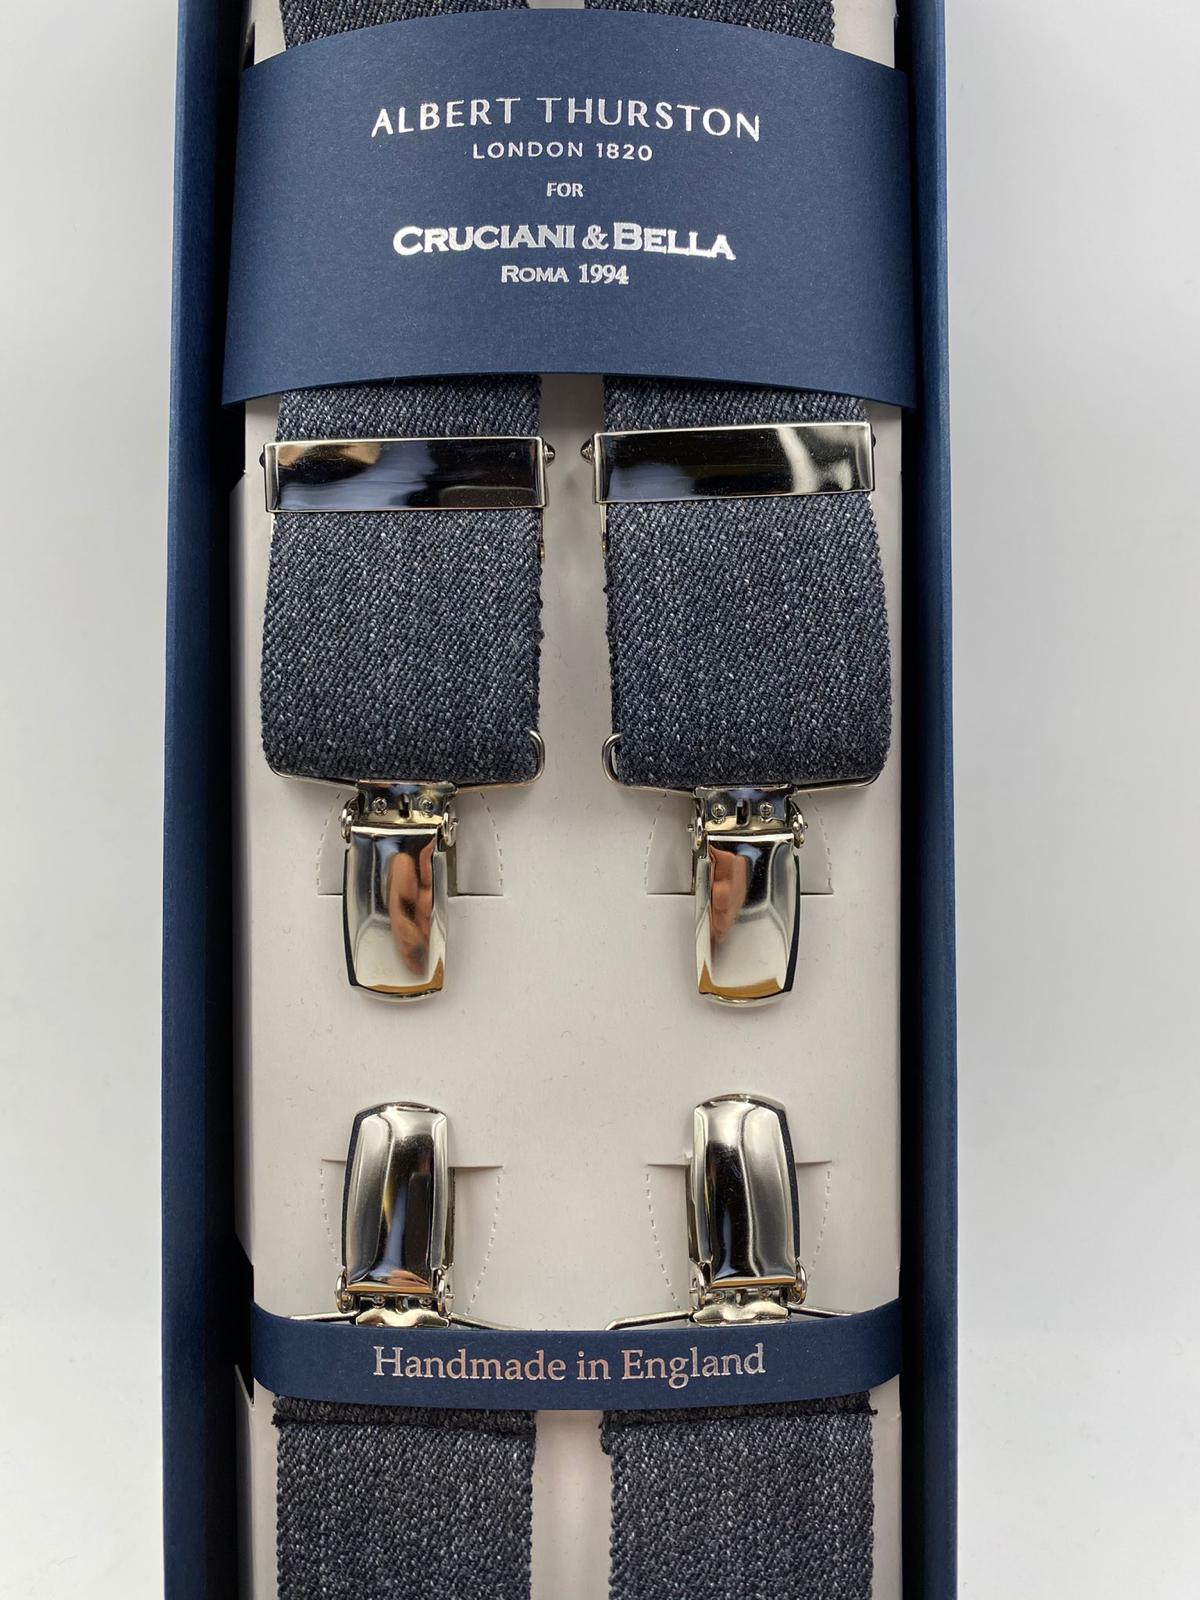 Albert Thurston for Cruciani & Bella Made in England Clip on Adjustable Sizing 35 mm elastic braces Medium Grey Plain X-Shaped Nickel Fittings Size: L #4832